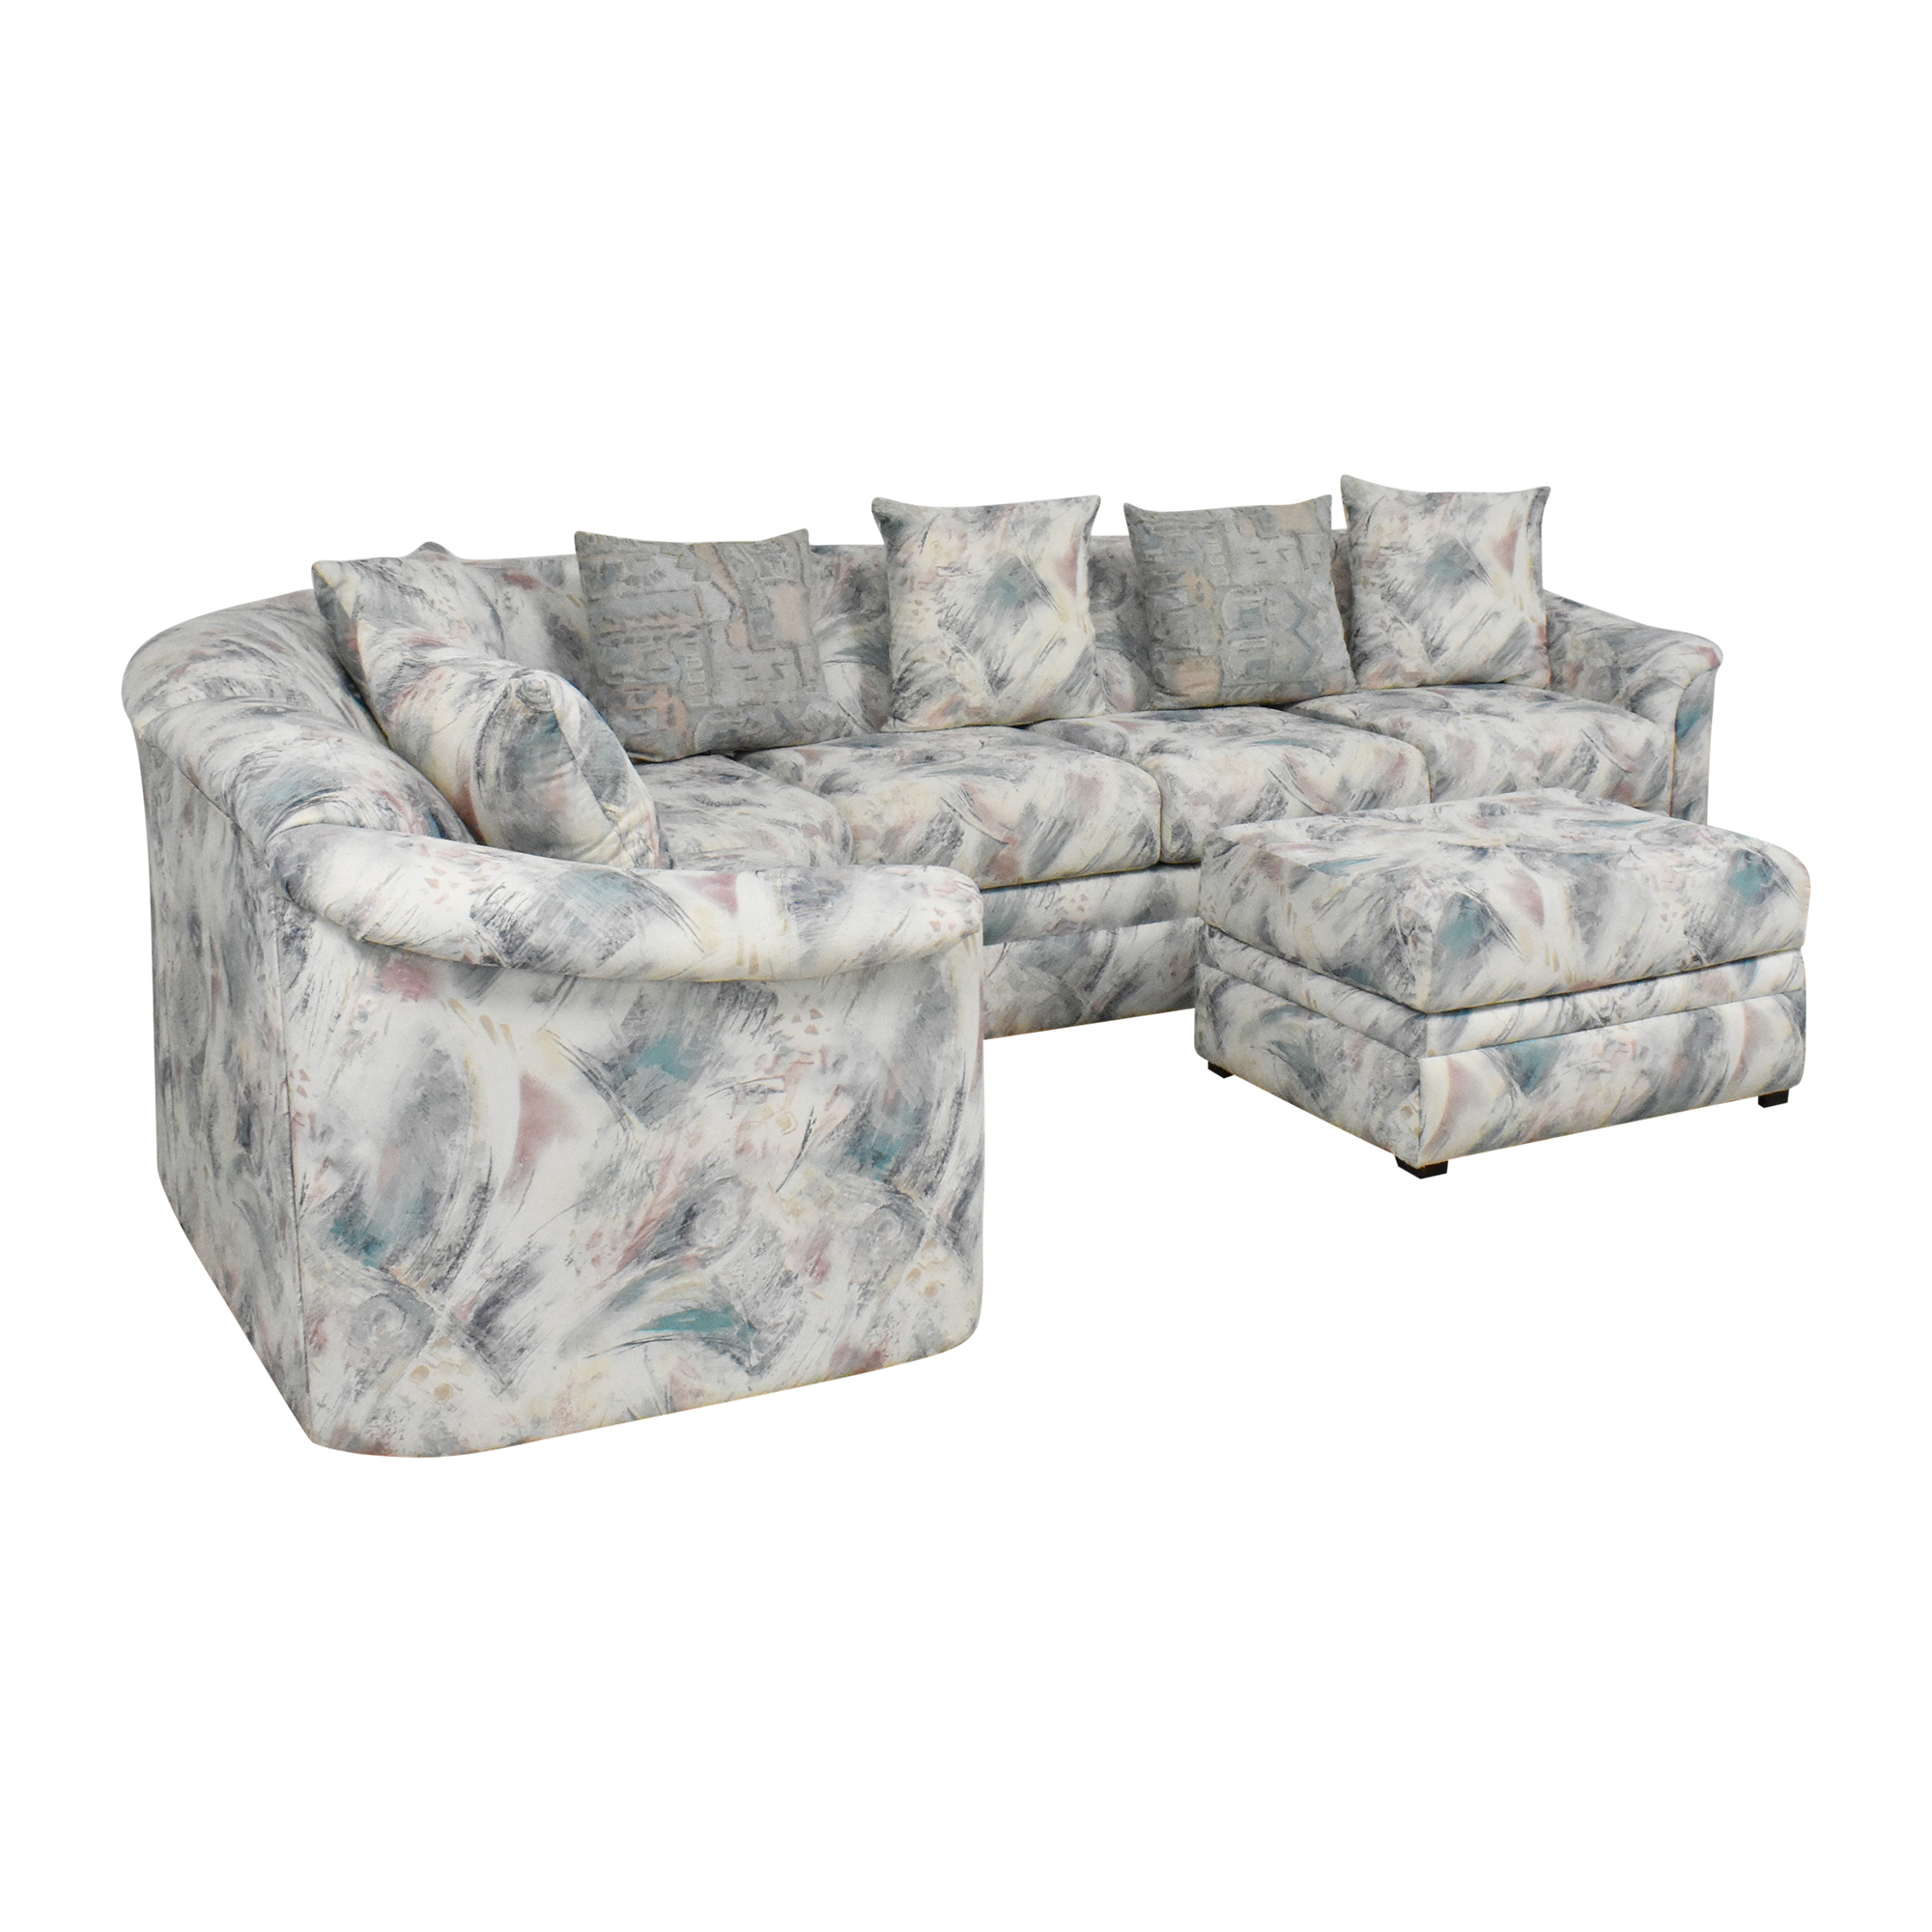 Schweiger Industries Schweiger L Shaped Sectional used